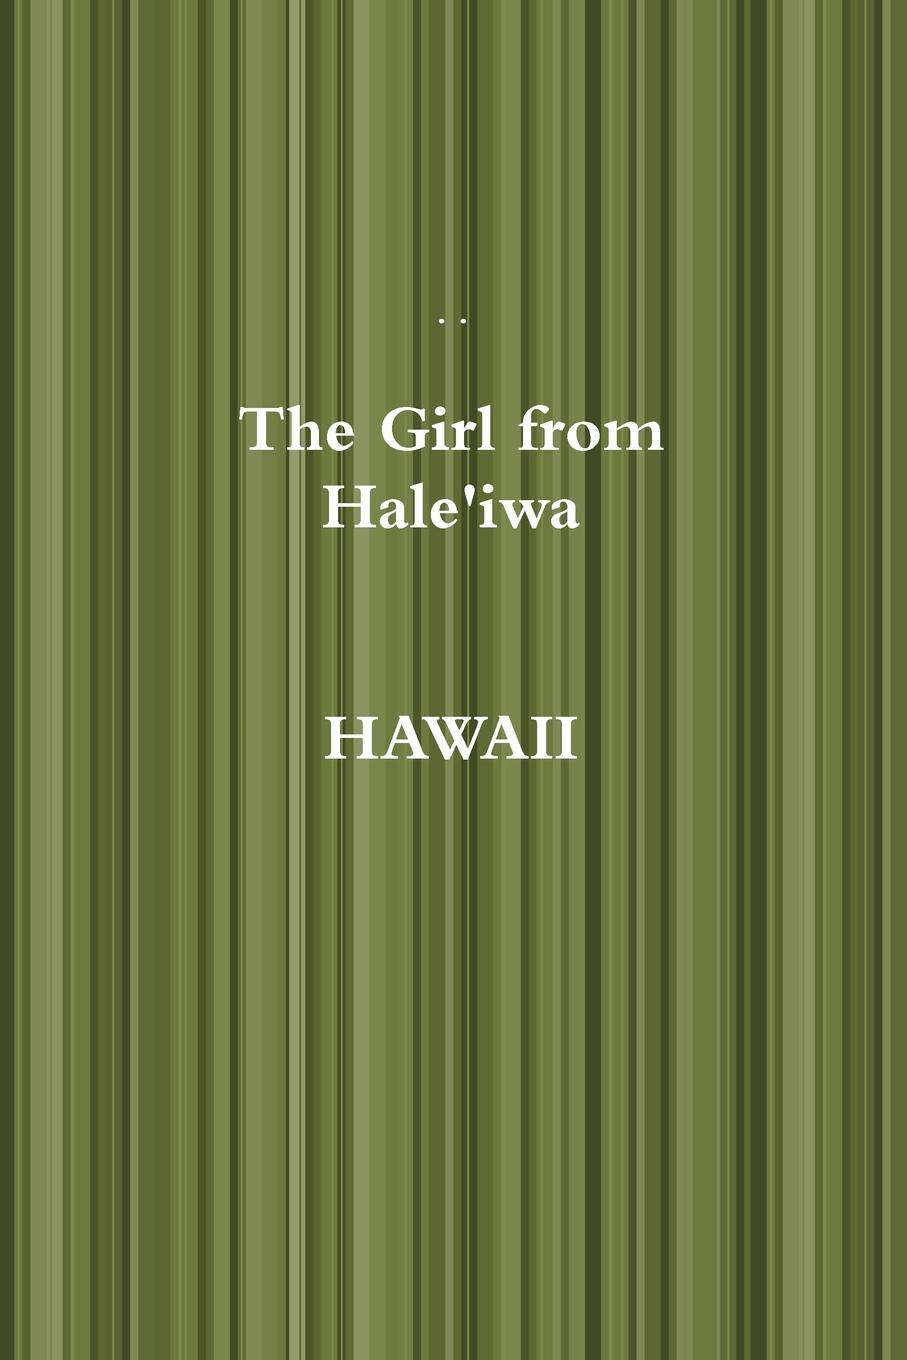 . . The Girl from Hale.iwa HAWAII